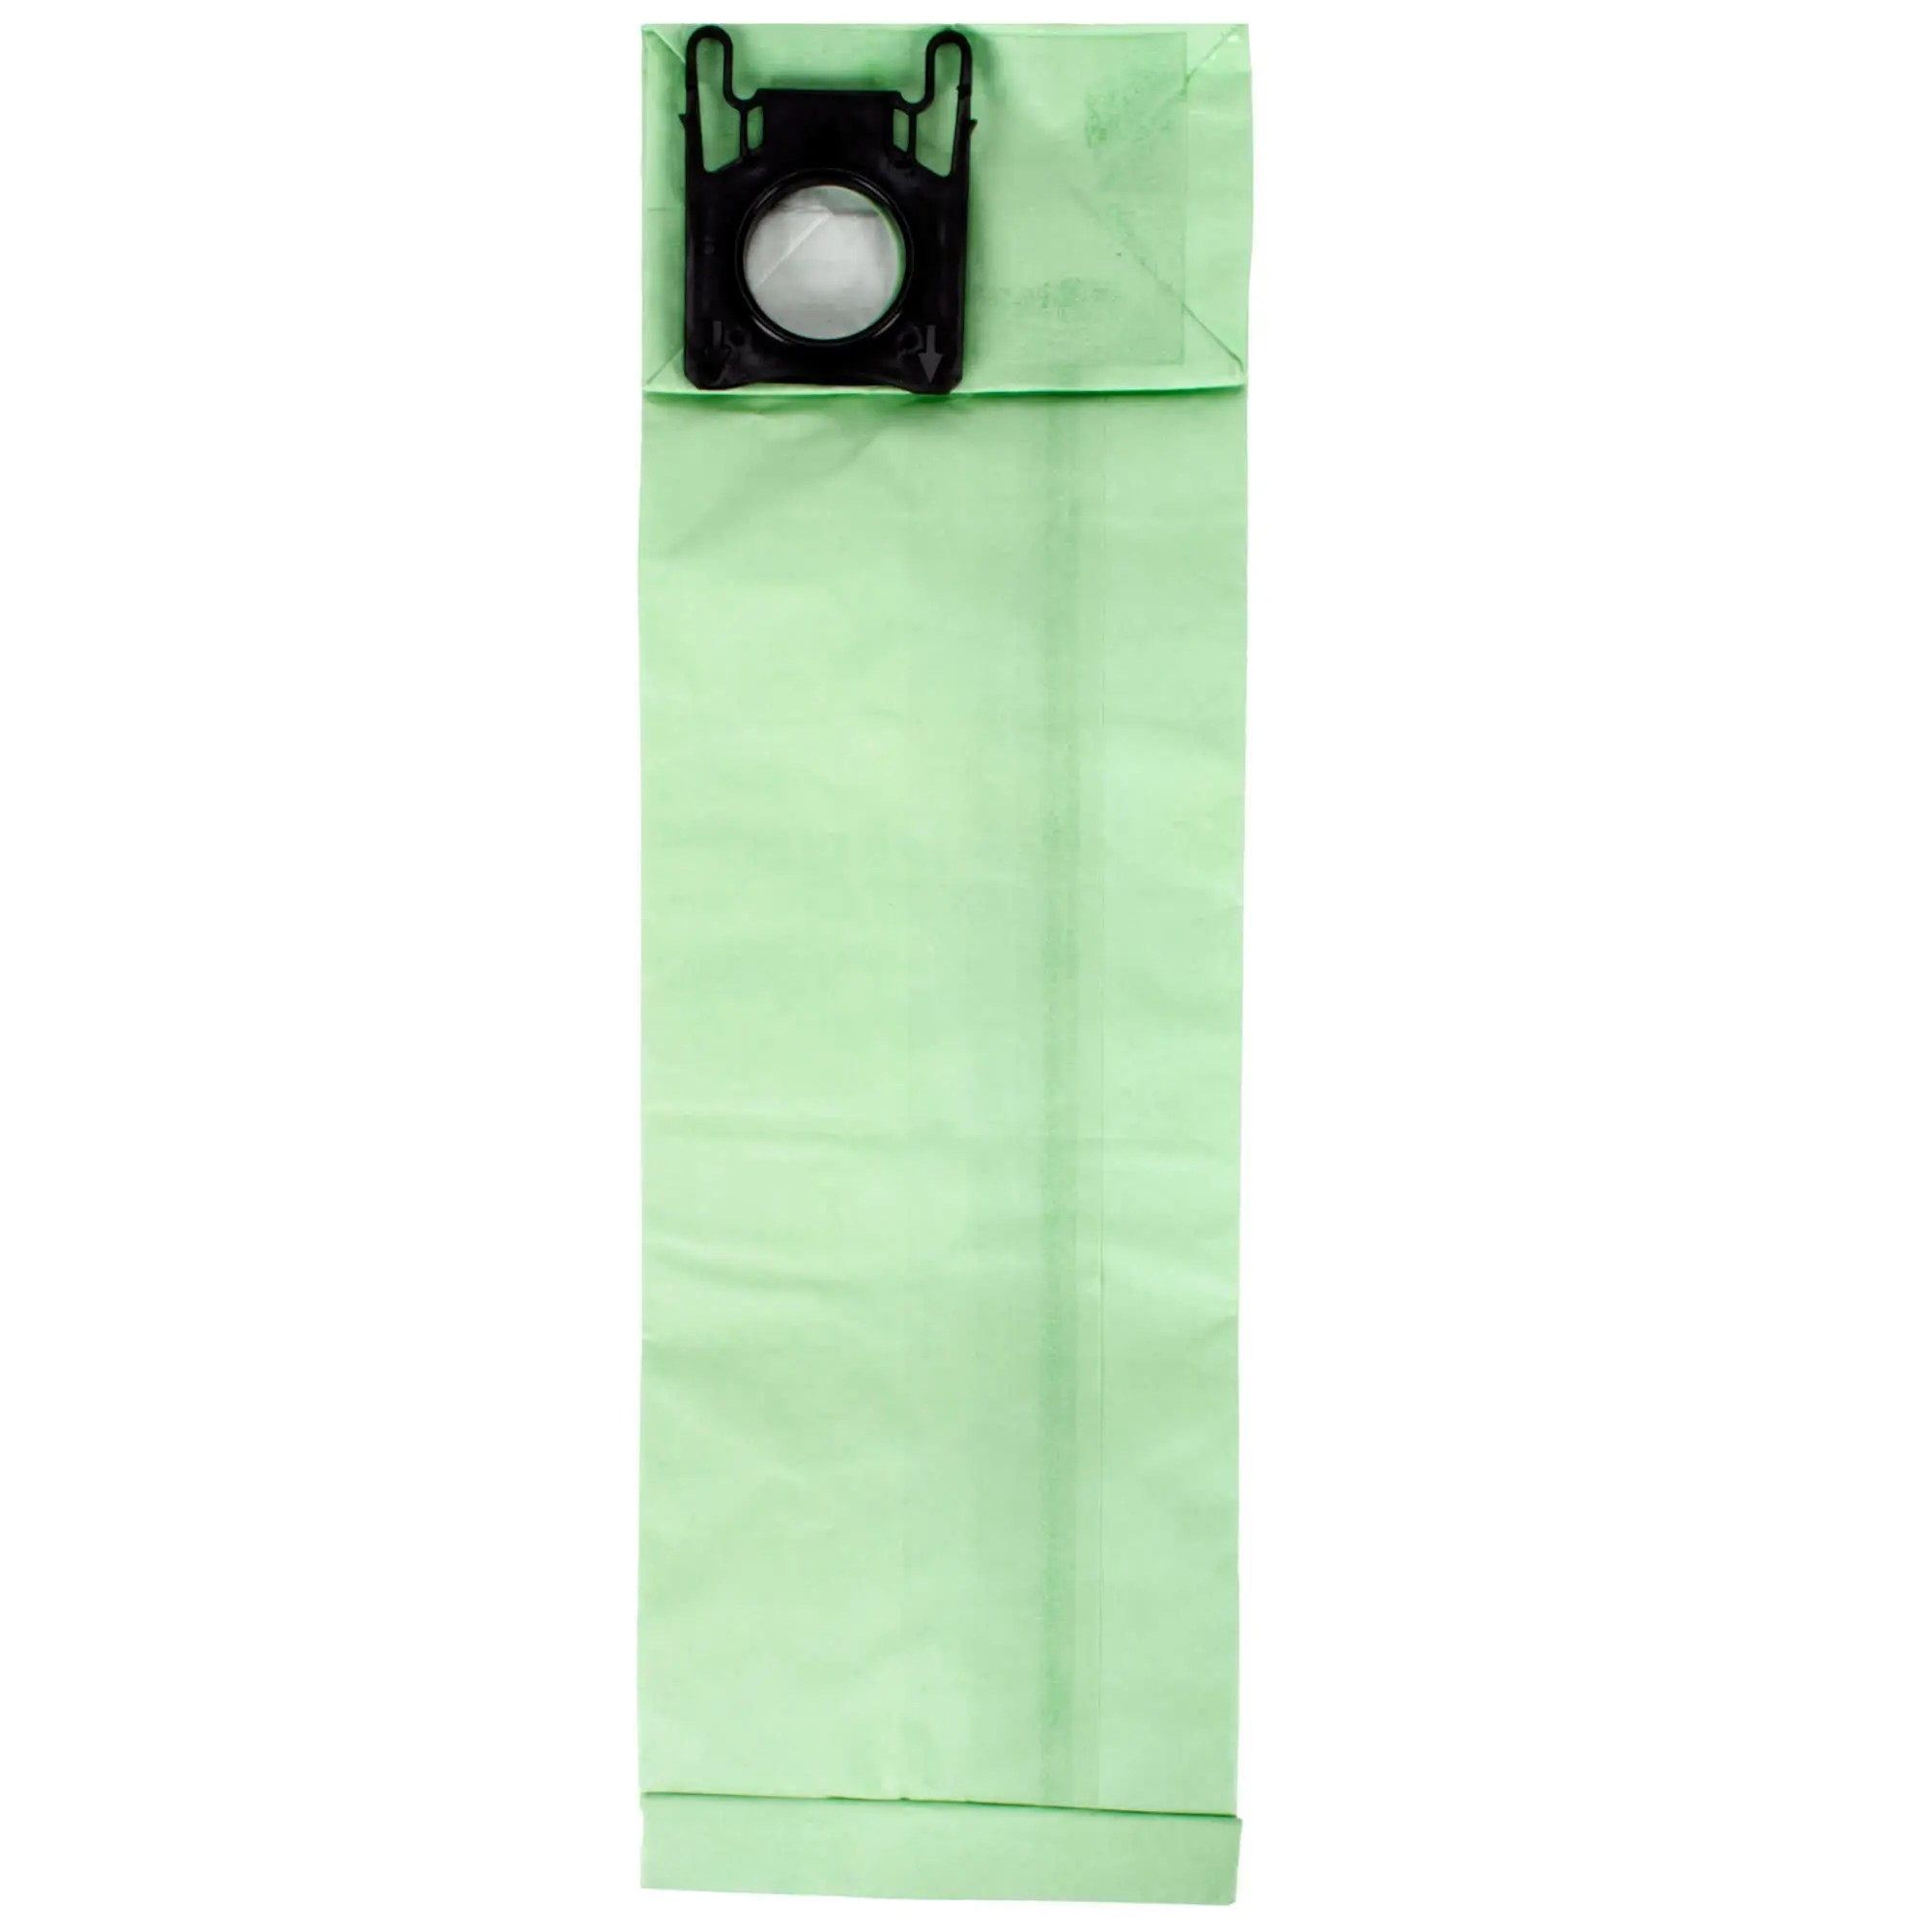 Rubbermaid Vacuum Cleaner Replacement Bags 9VMHBA12 FG9VMHBA12  10 Pack